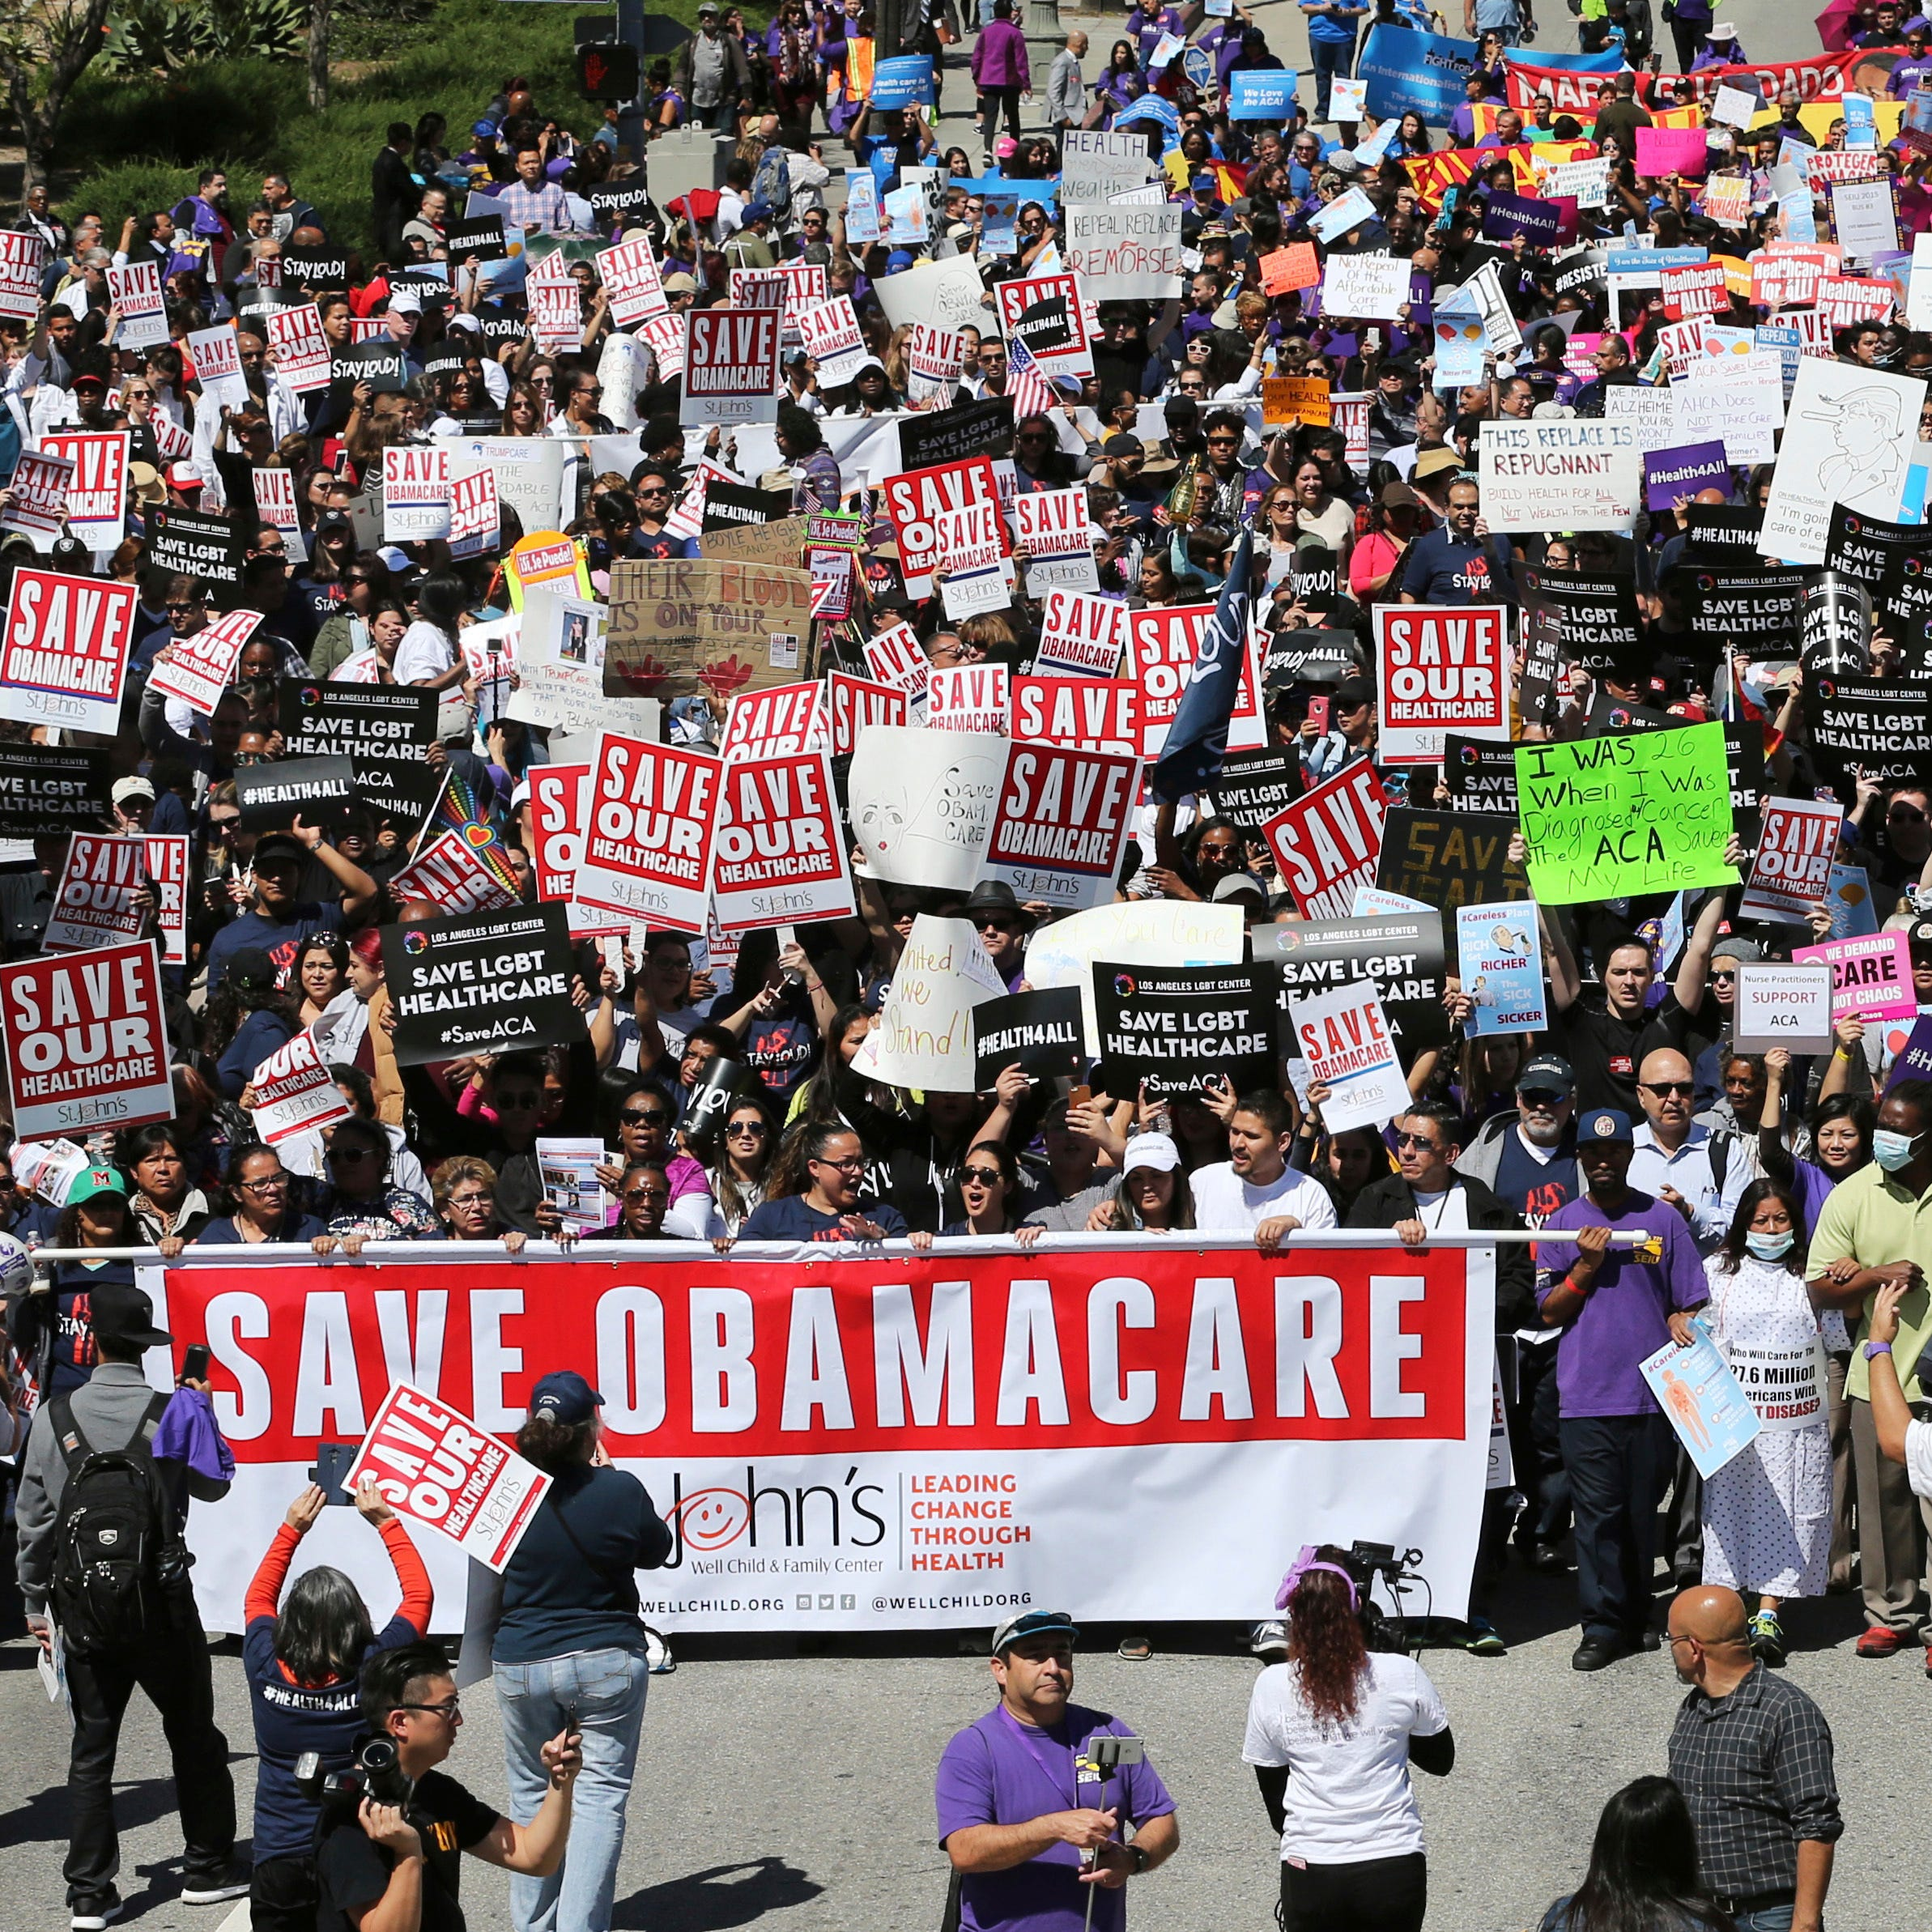 A federal judge has ruled the Affordable Care Act unconstitutional. So now what happens?